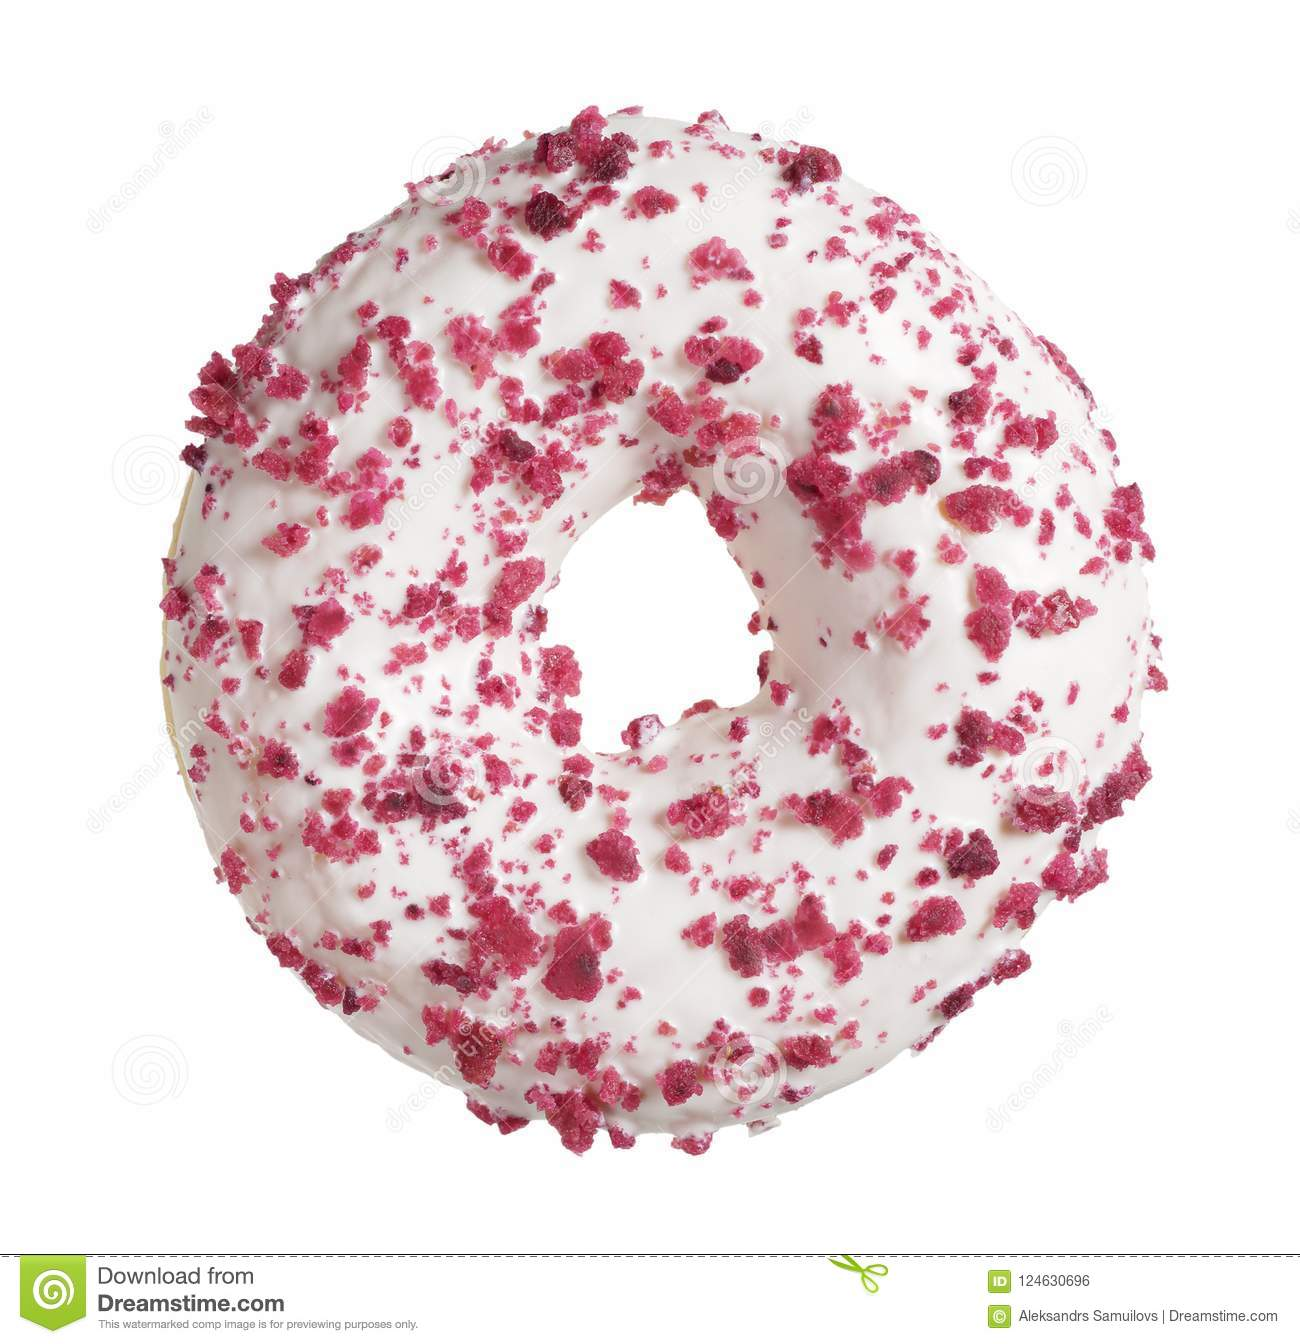 Donut with cream cheese